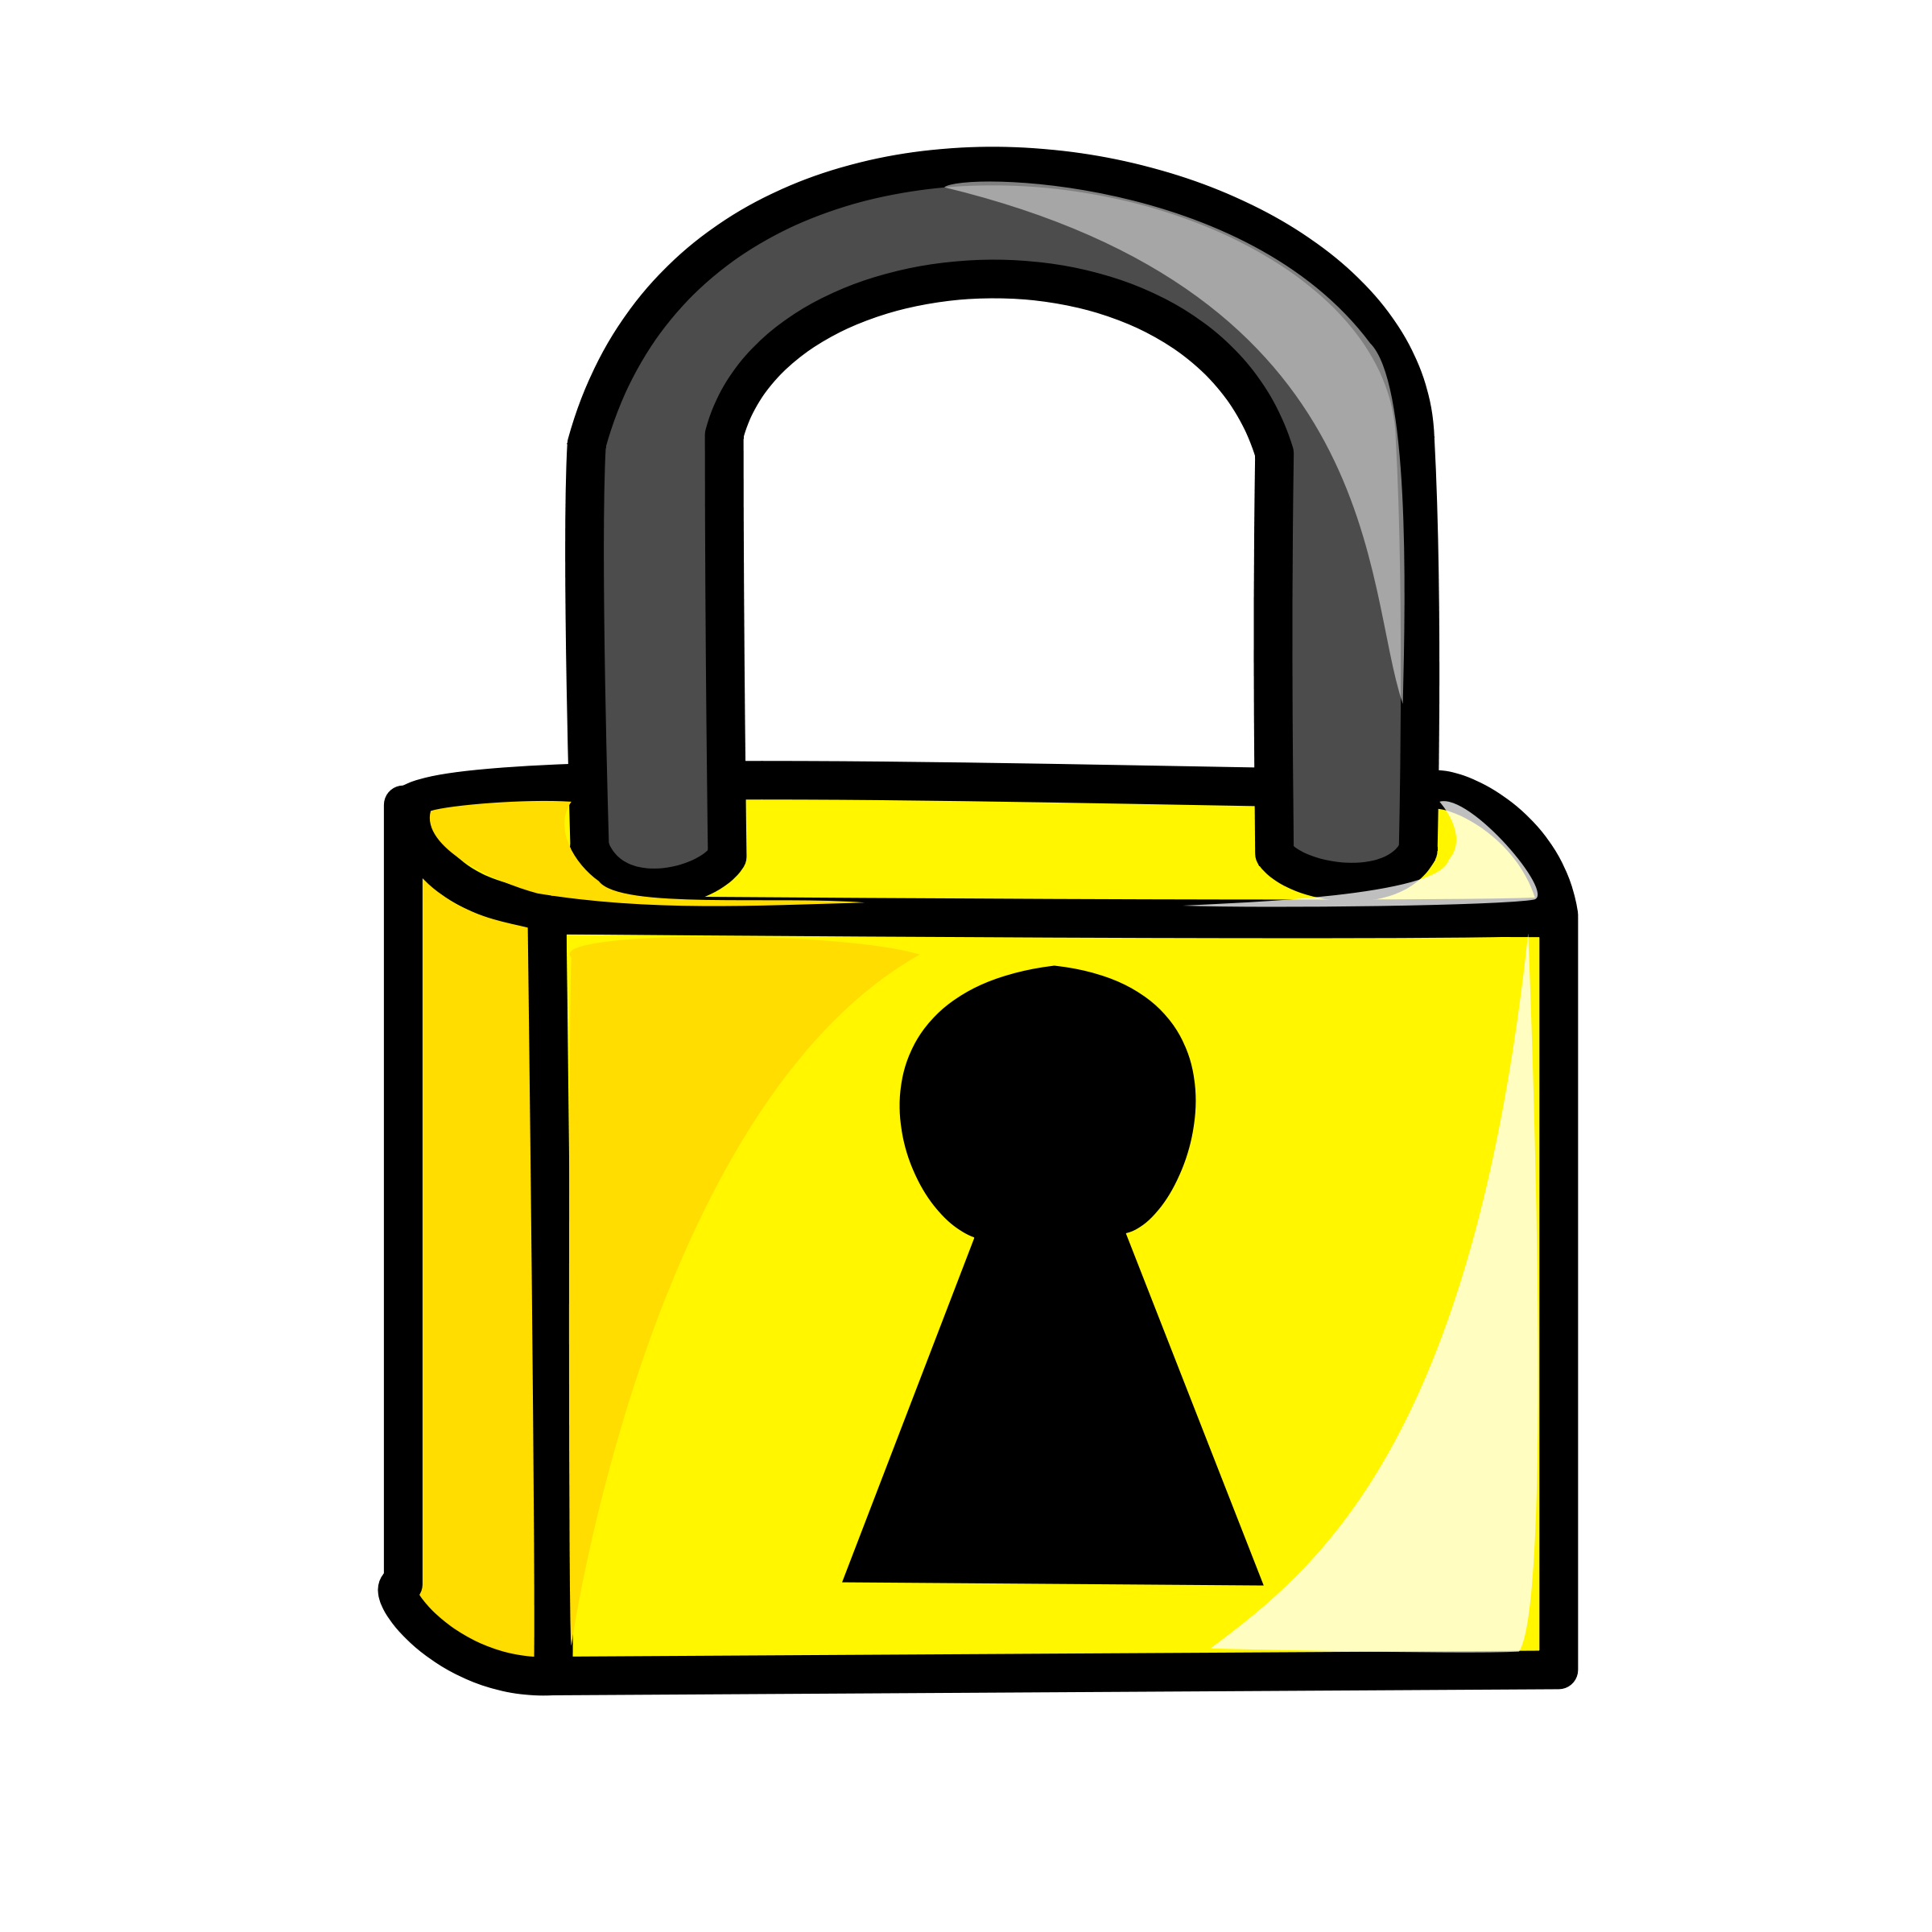 Security clipart free clipart image imag-Security clipart free clipart image image-1